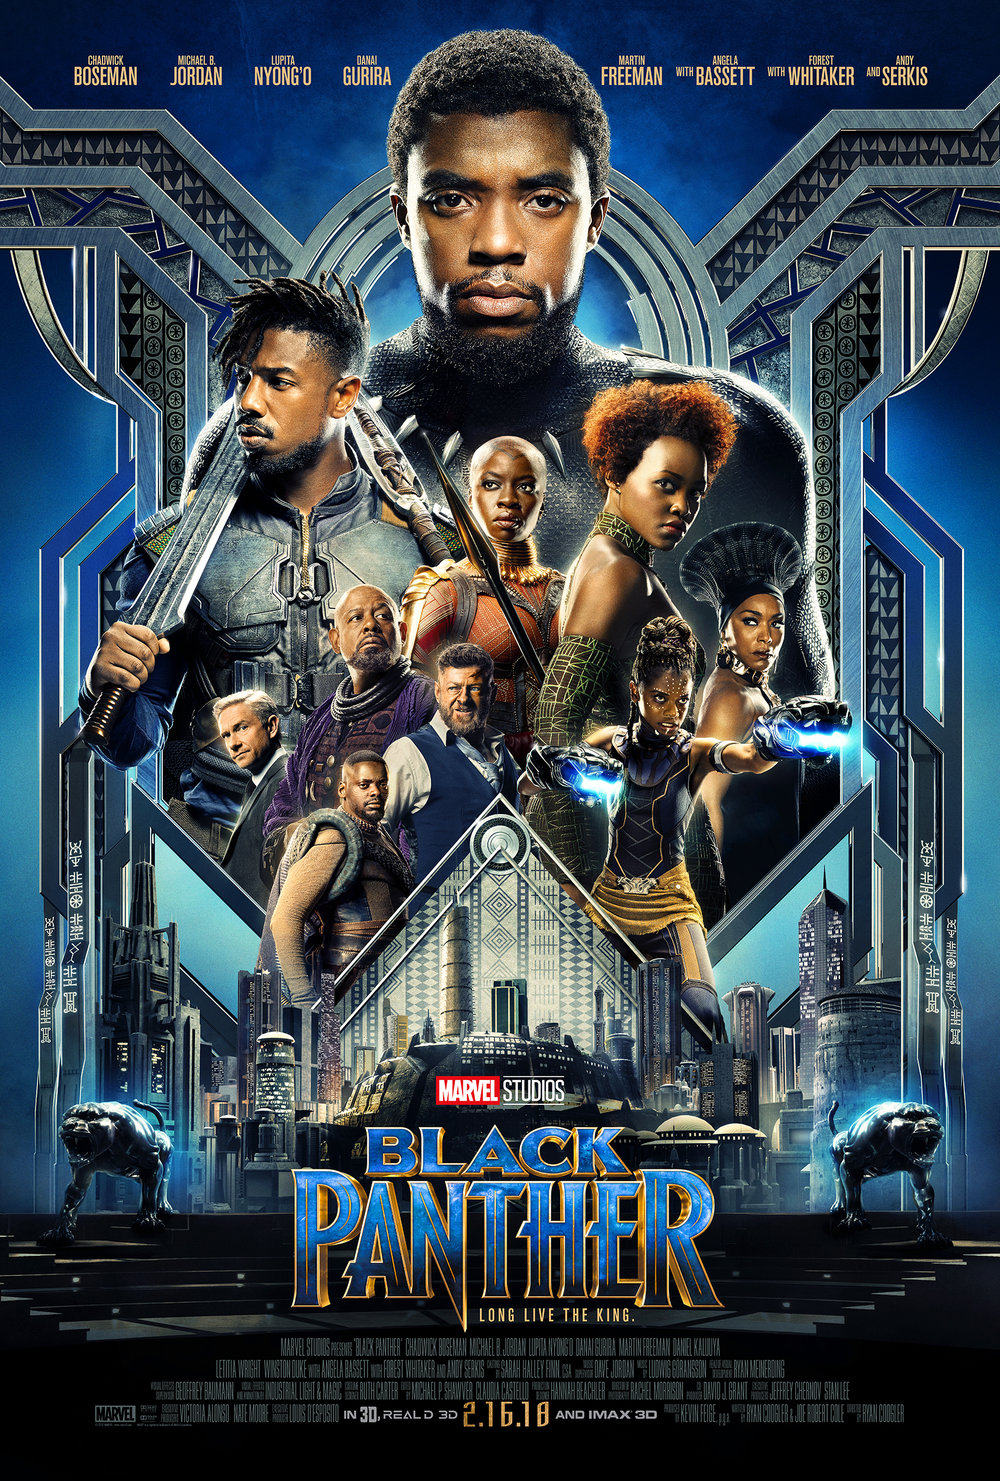 BLACK PANTHER    PG-13   1:10  4:10   7:10   9:45  Superhero  ‧ 2h 5m